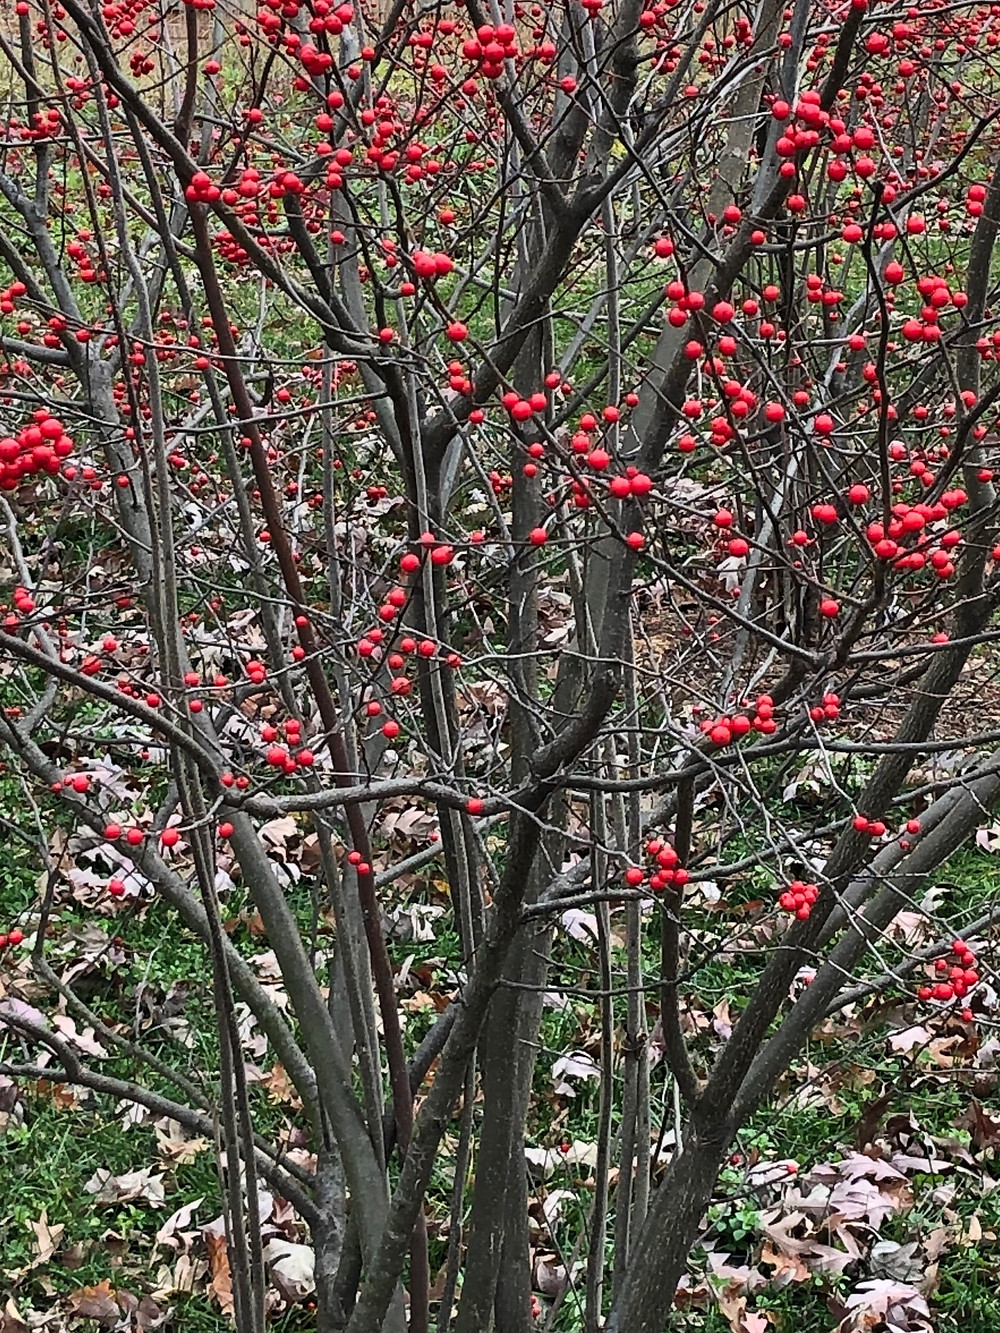 winterberries mid-Fall